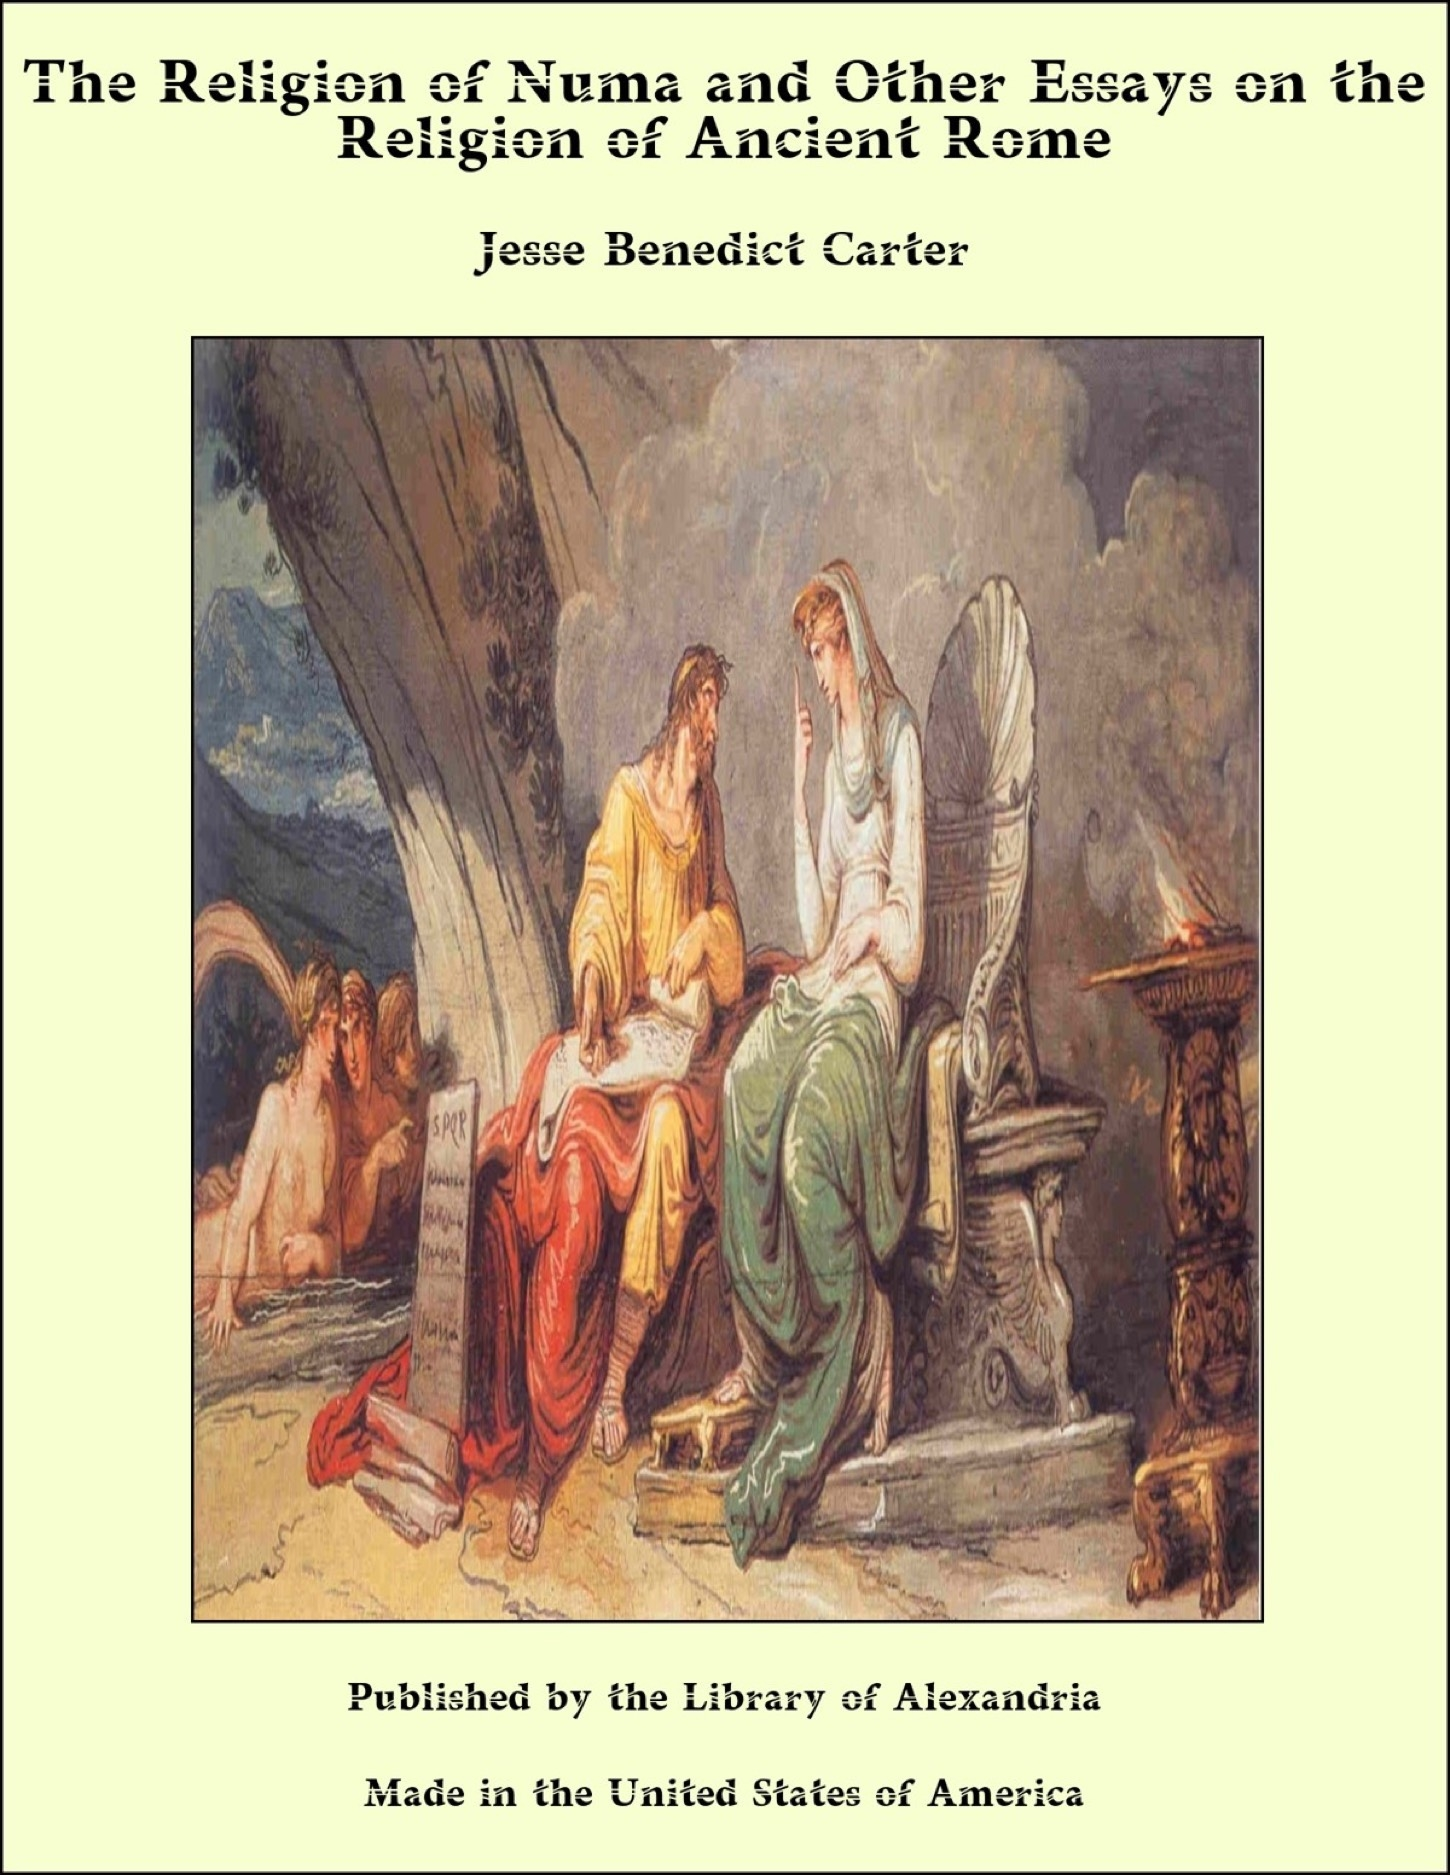 rituals in religion for ancient rome theology religion essay The actual substance of the roman state religion lay in ritual rather than individual belief, and was collective rather than personal the rituals consisted of festivals, offerings (often of food.